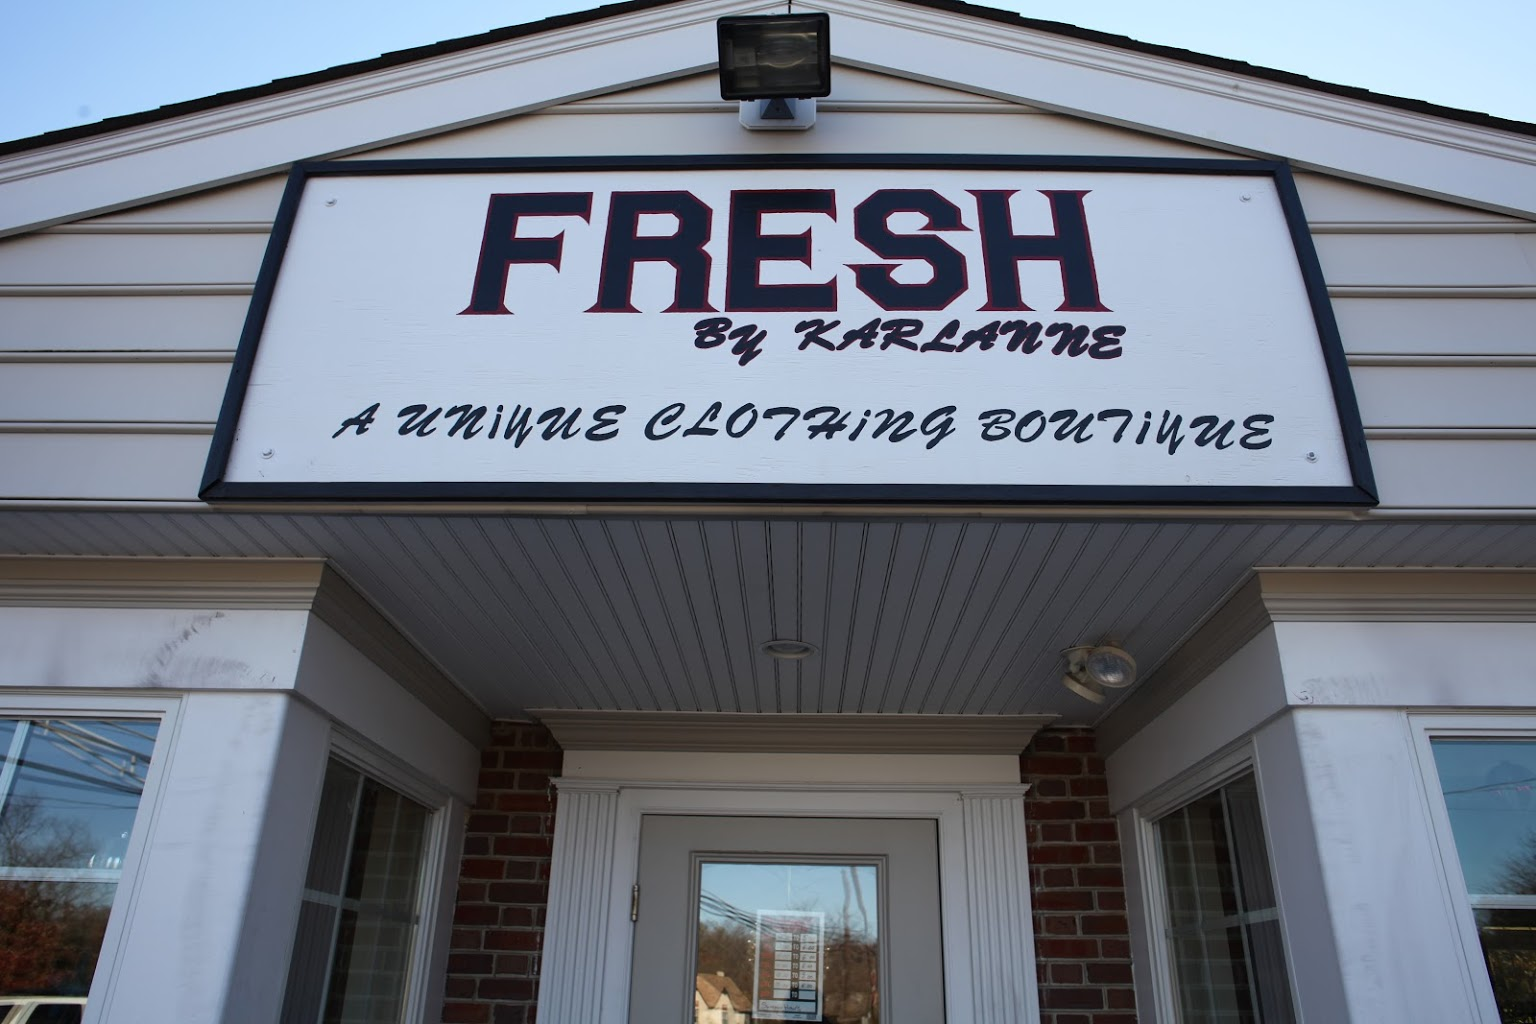 front sign Fresh By Karlanne Clothing Boutique Marlton, NJ